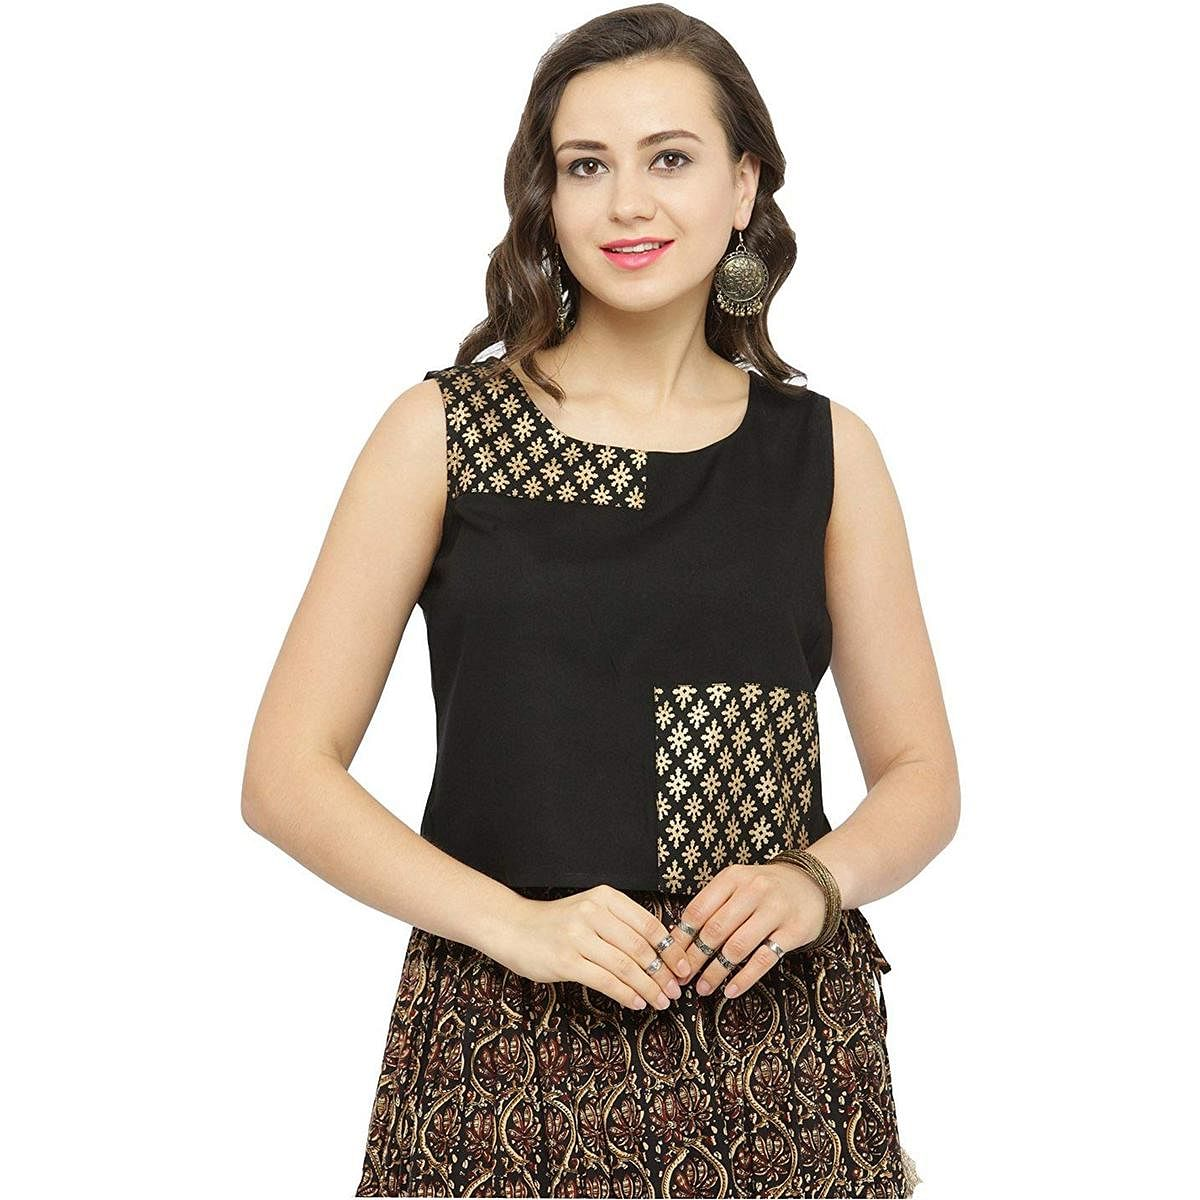 Radiant Black Colored Casual Printed Rayon Top